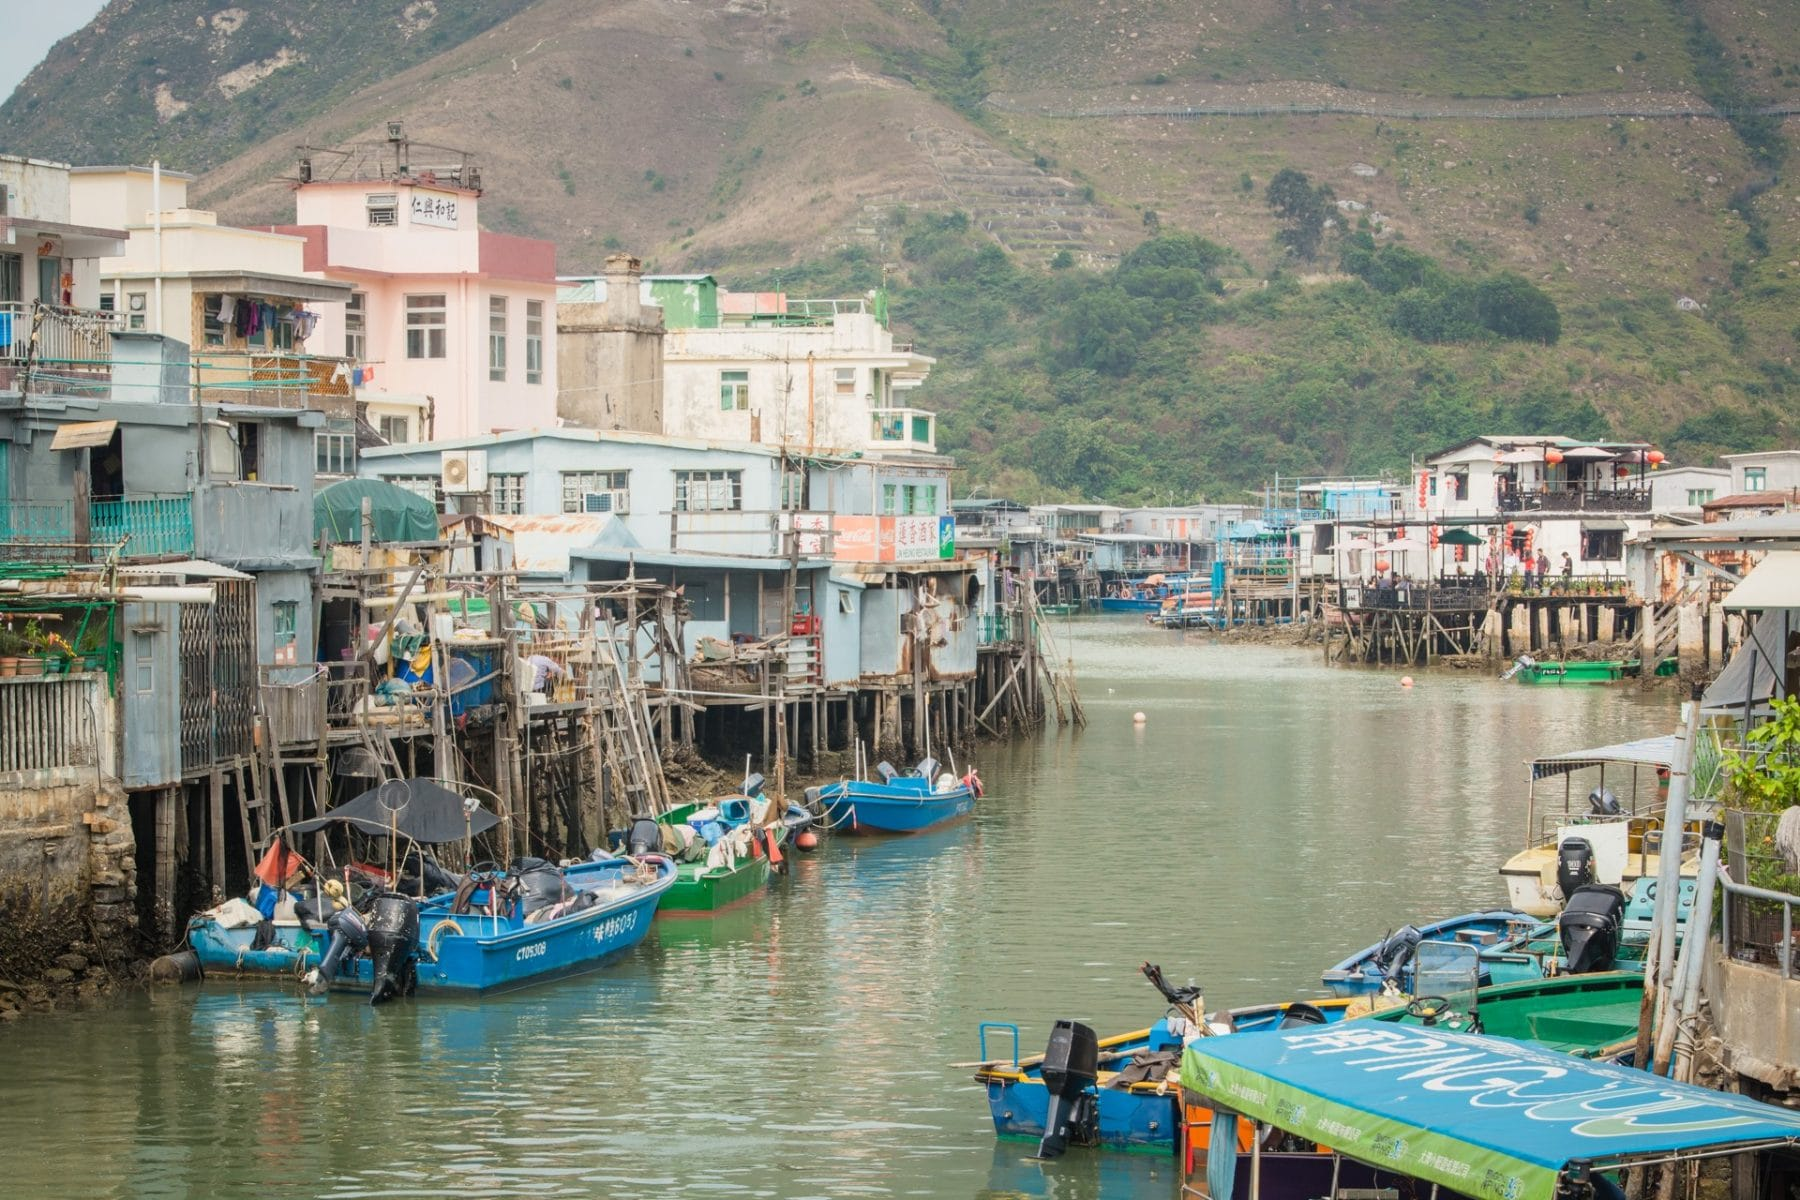 port village tai o - lantau island hong kong